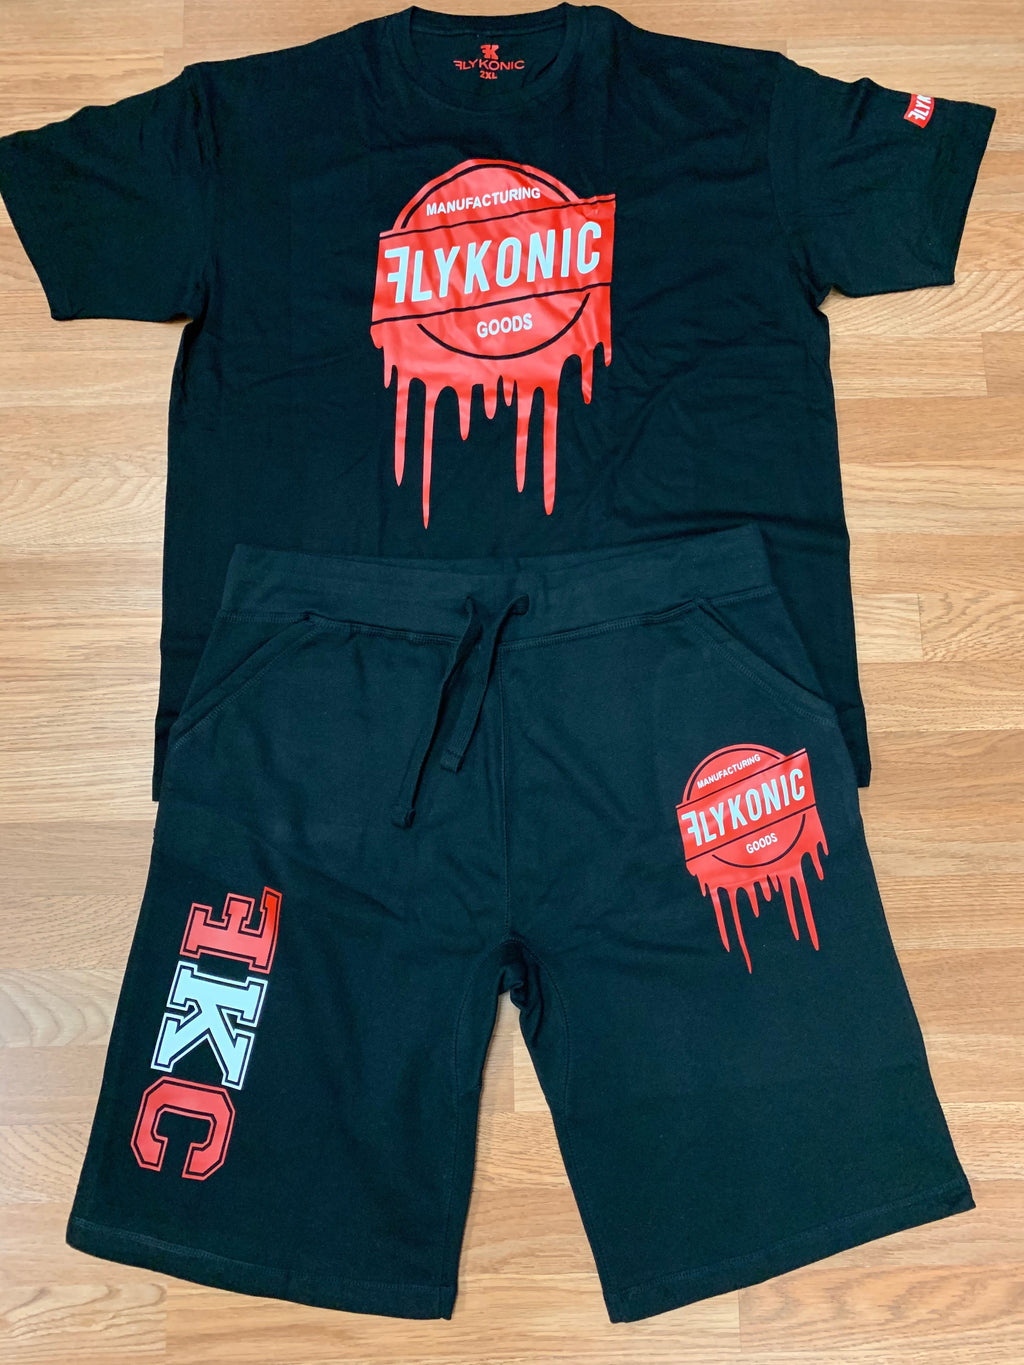 Flykonic Manufacturing Goods Outfit